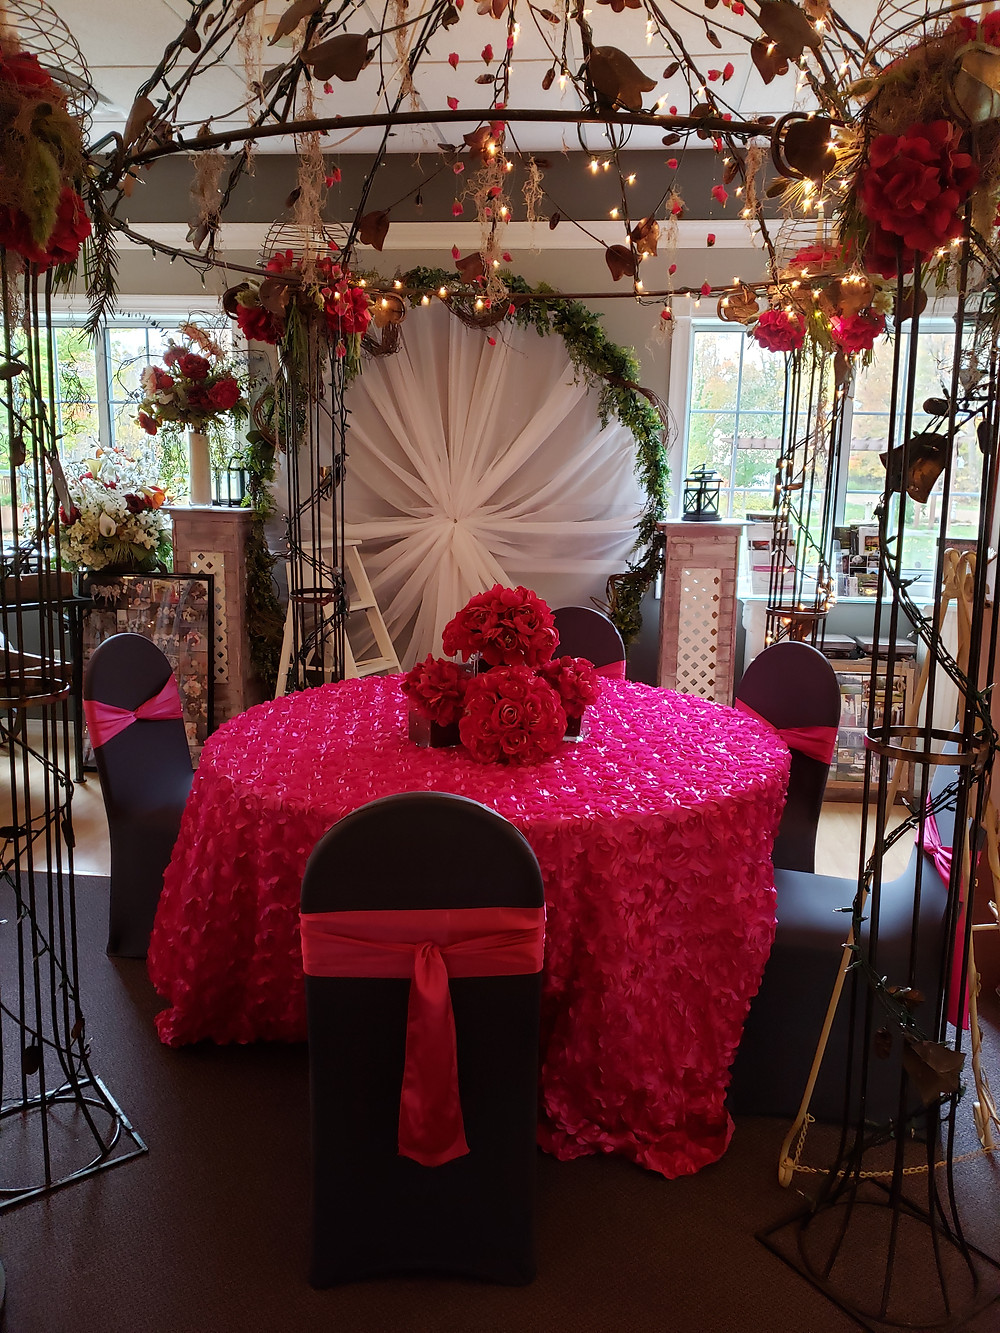 A bright pink table and chairs with a pink set of wedding flowers in the center.